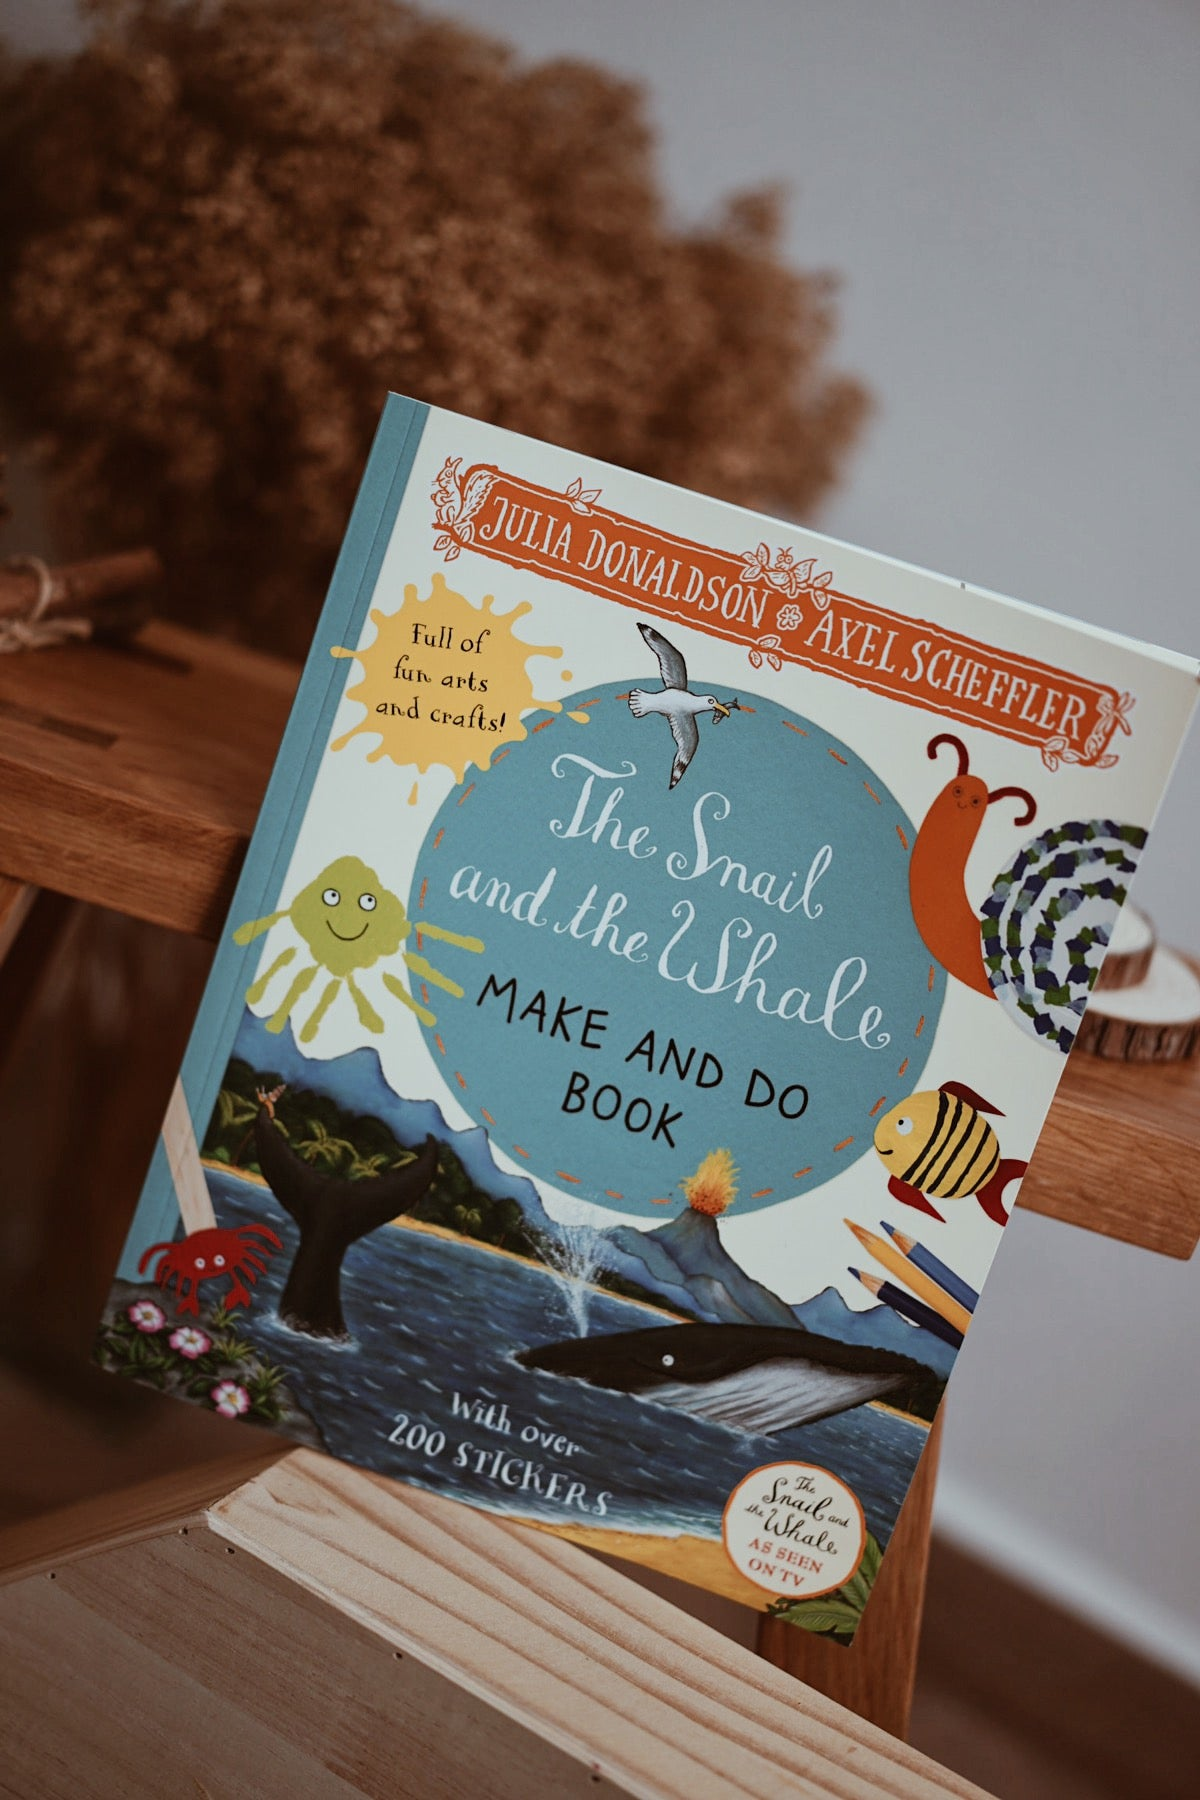 The Snail and the Whale Make and Do Book by Julia Donaldson